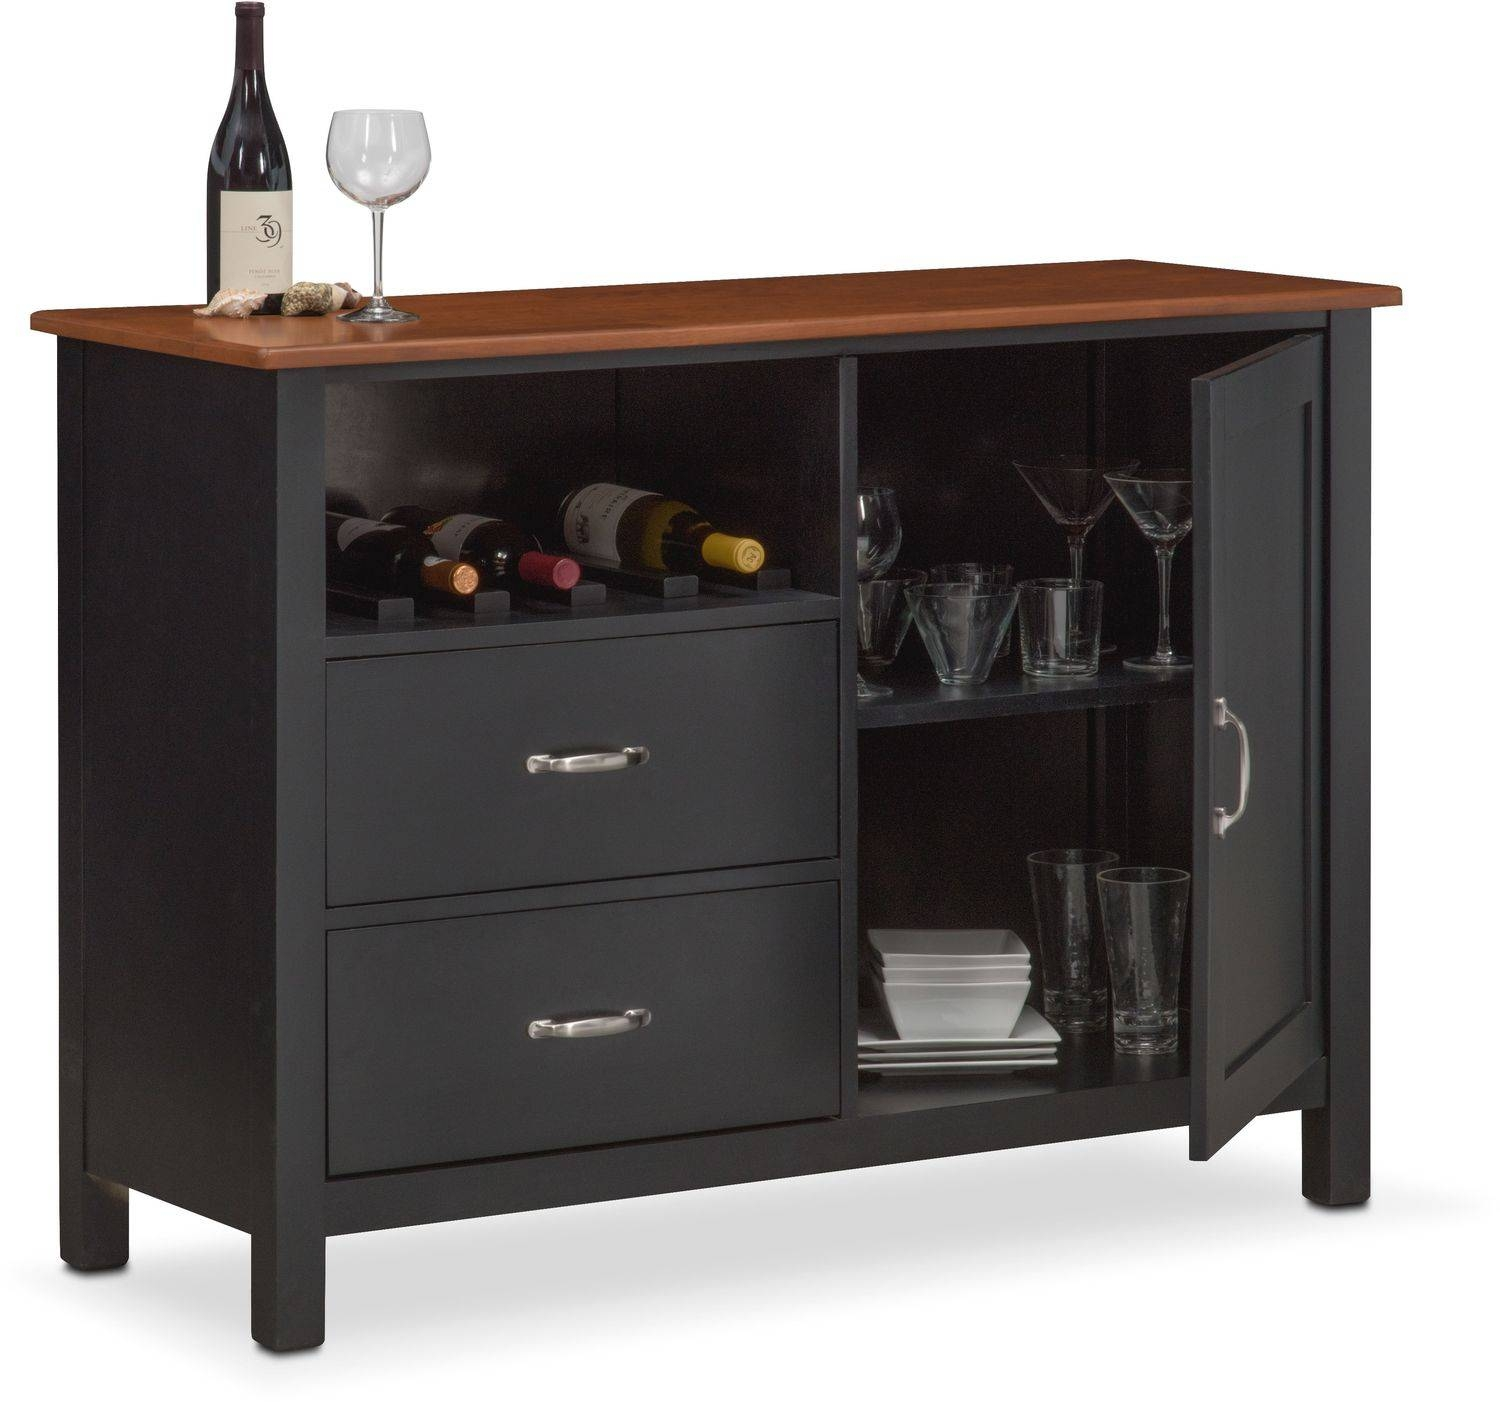 Nantucket Sideboard – Black And Cherry | Value City Furniture With Black Sideboard (View 17 of 20)